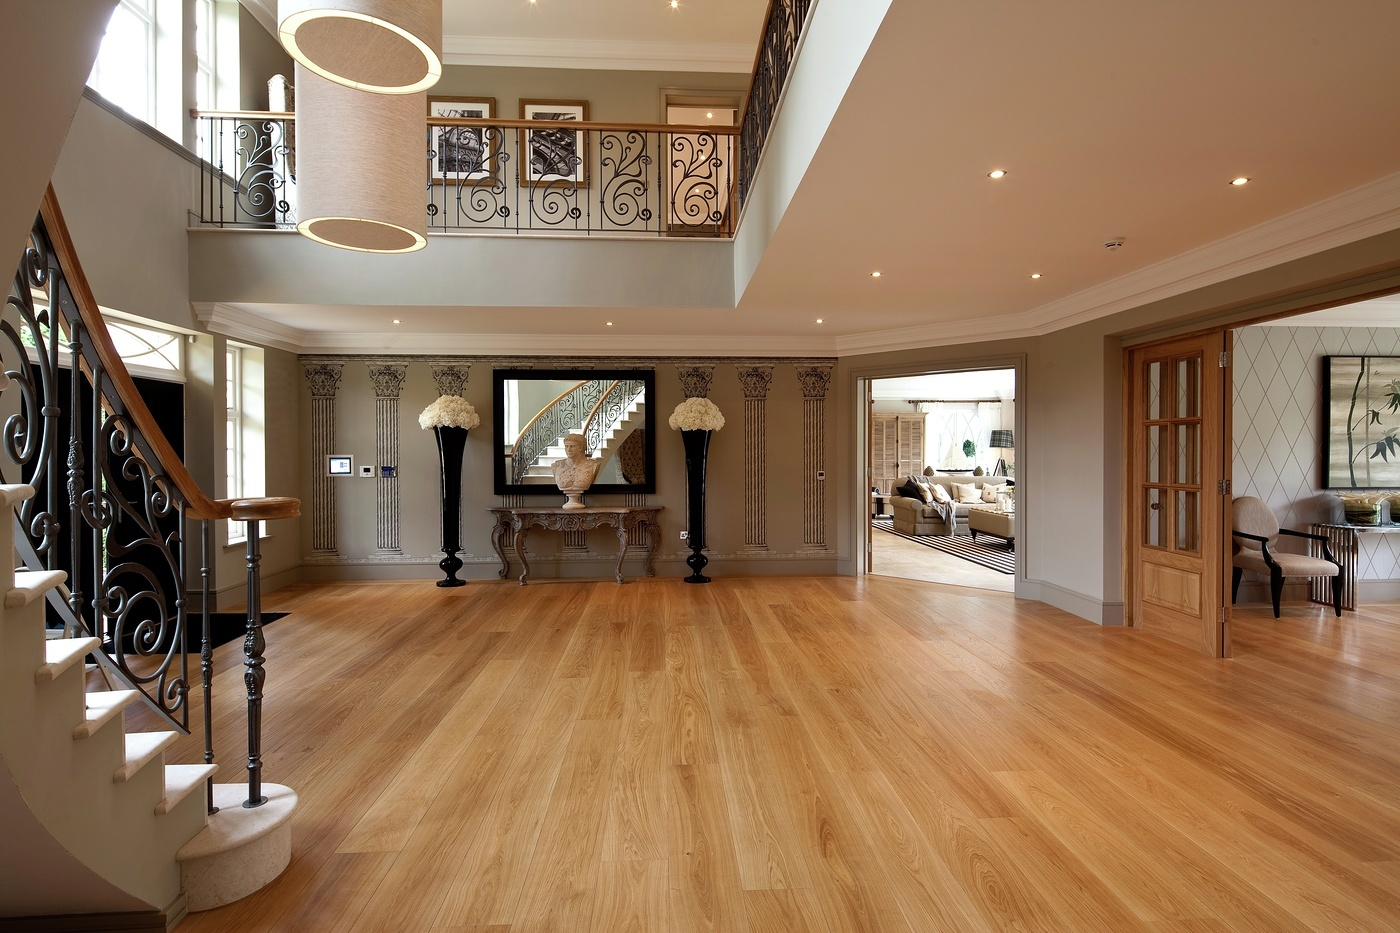 september-house-wentworth-estate-our-work-private-clients-ascot-design-view7.jpg